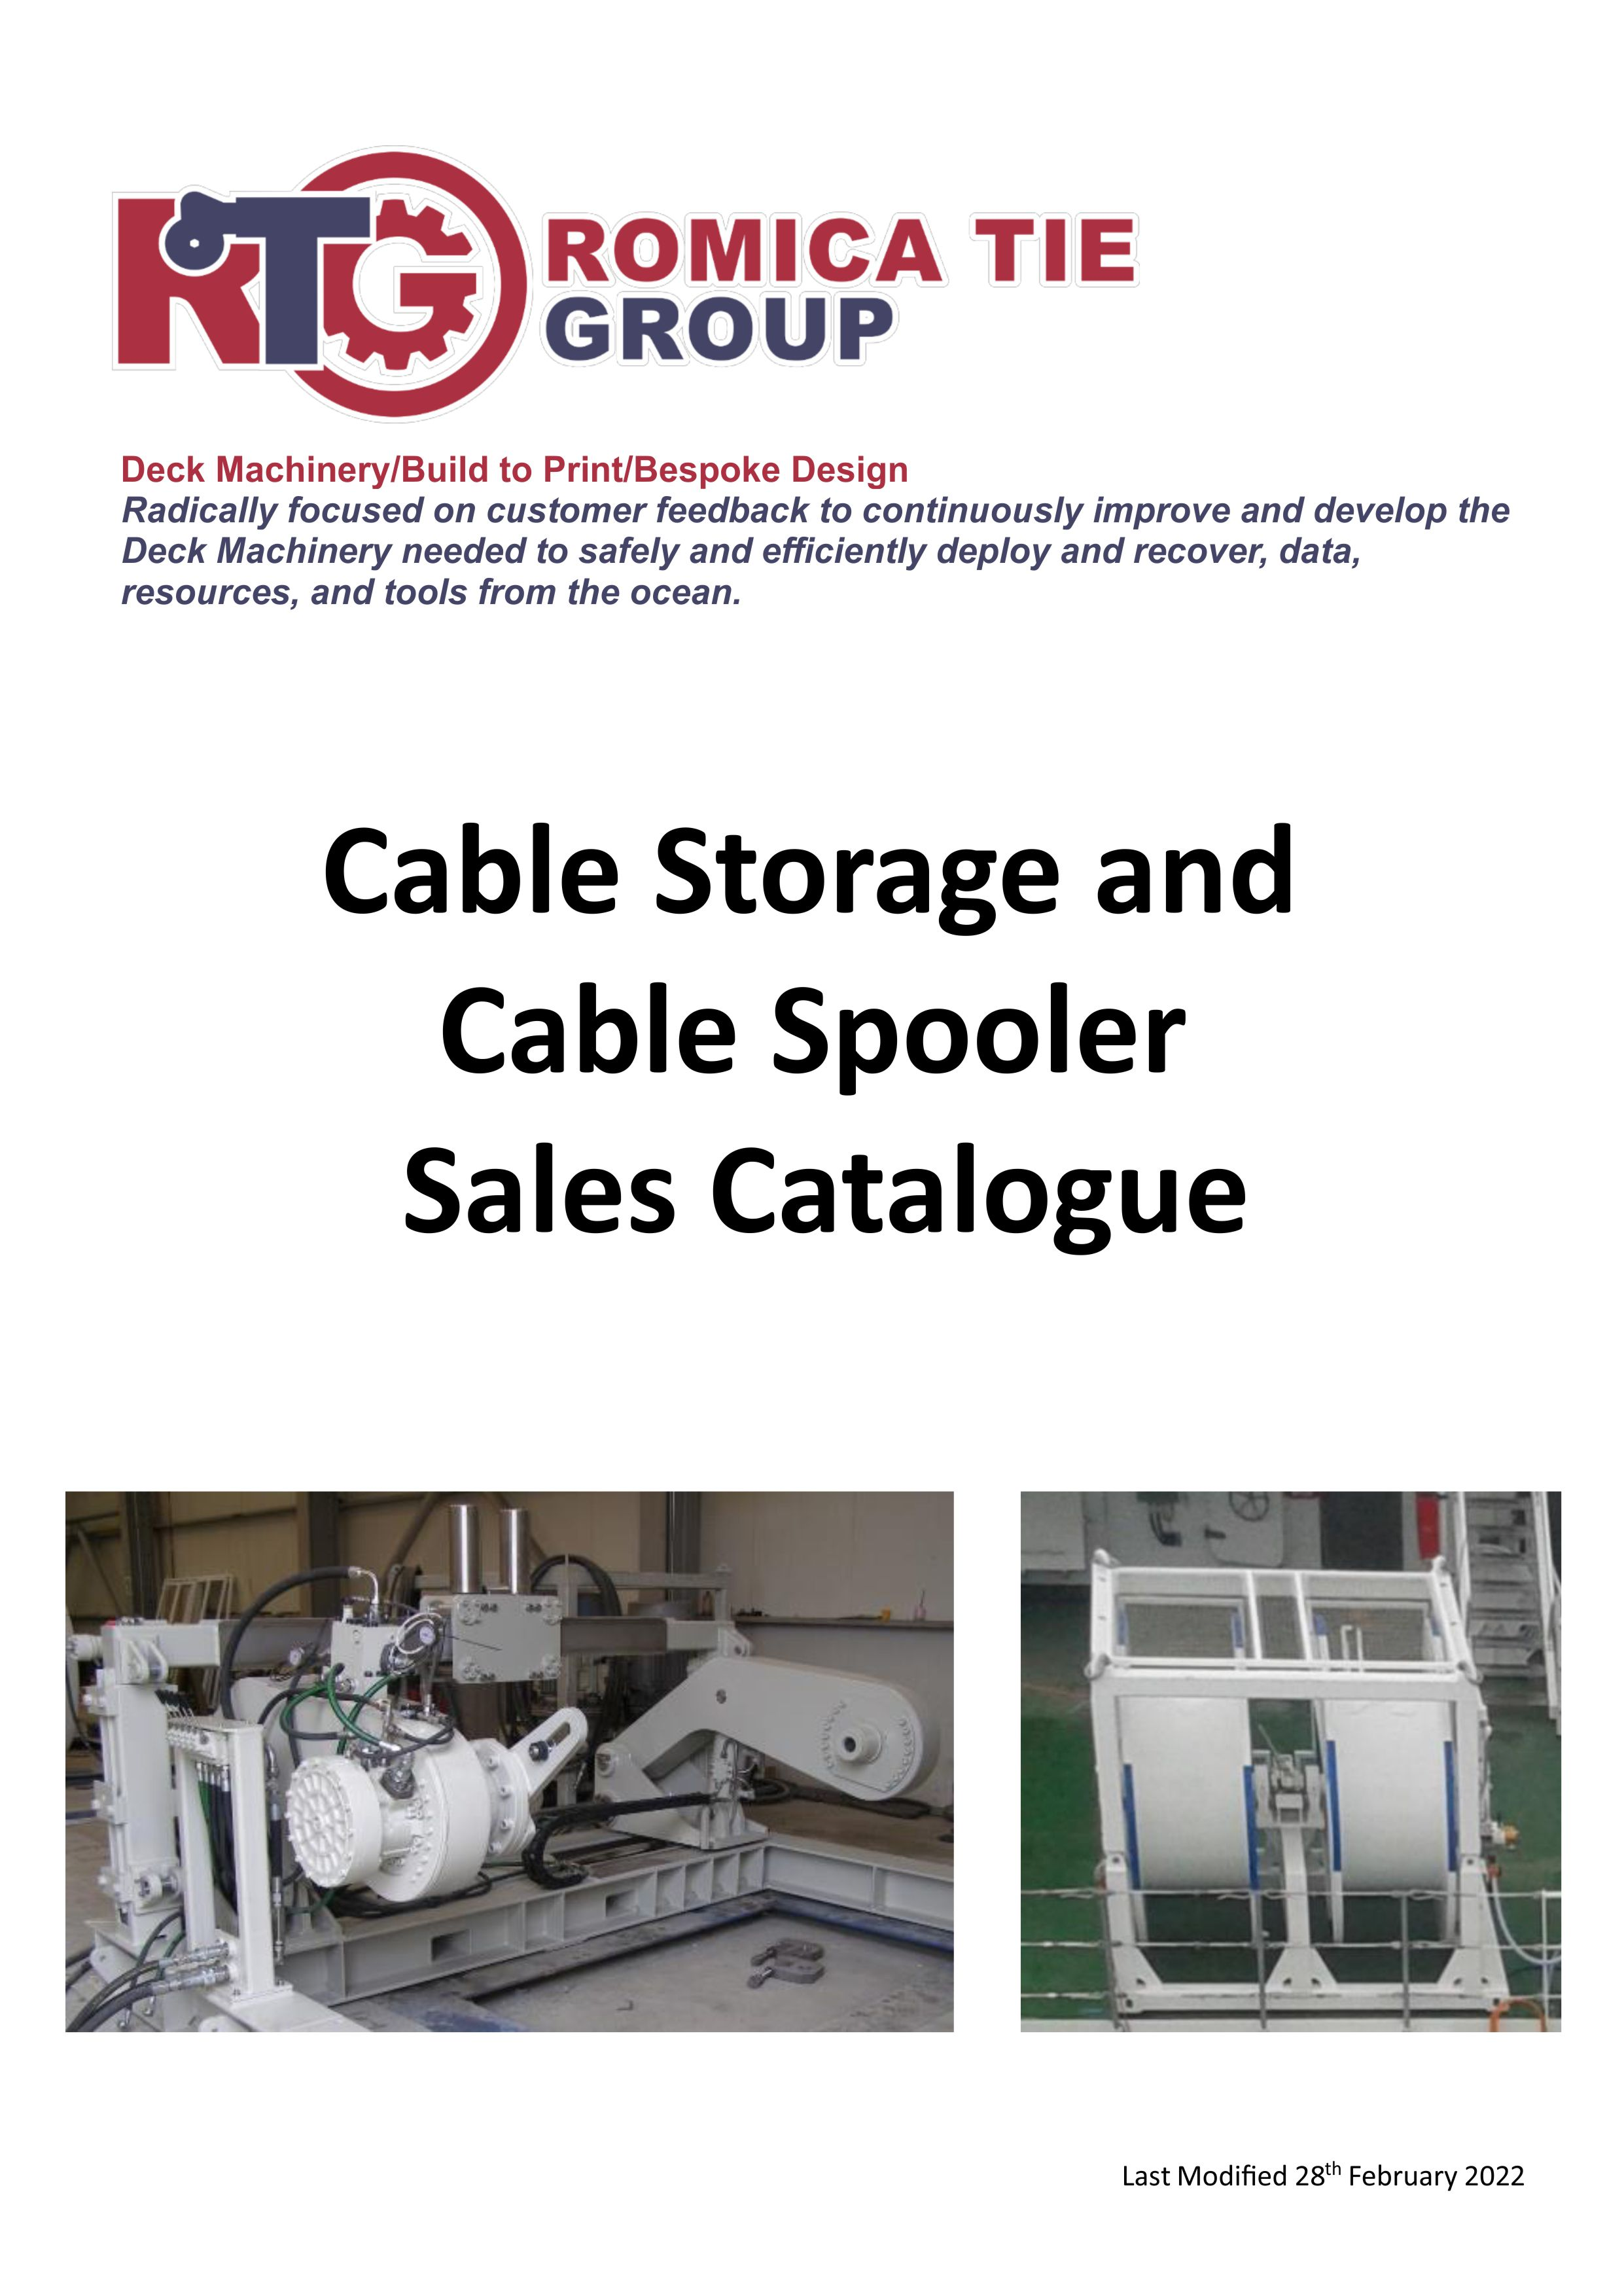 Cable Storage and Cable Spooler